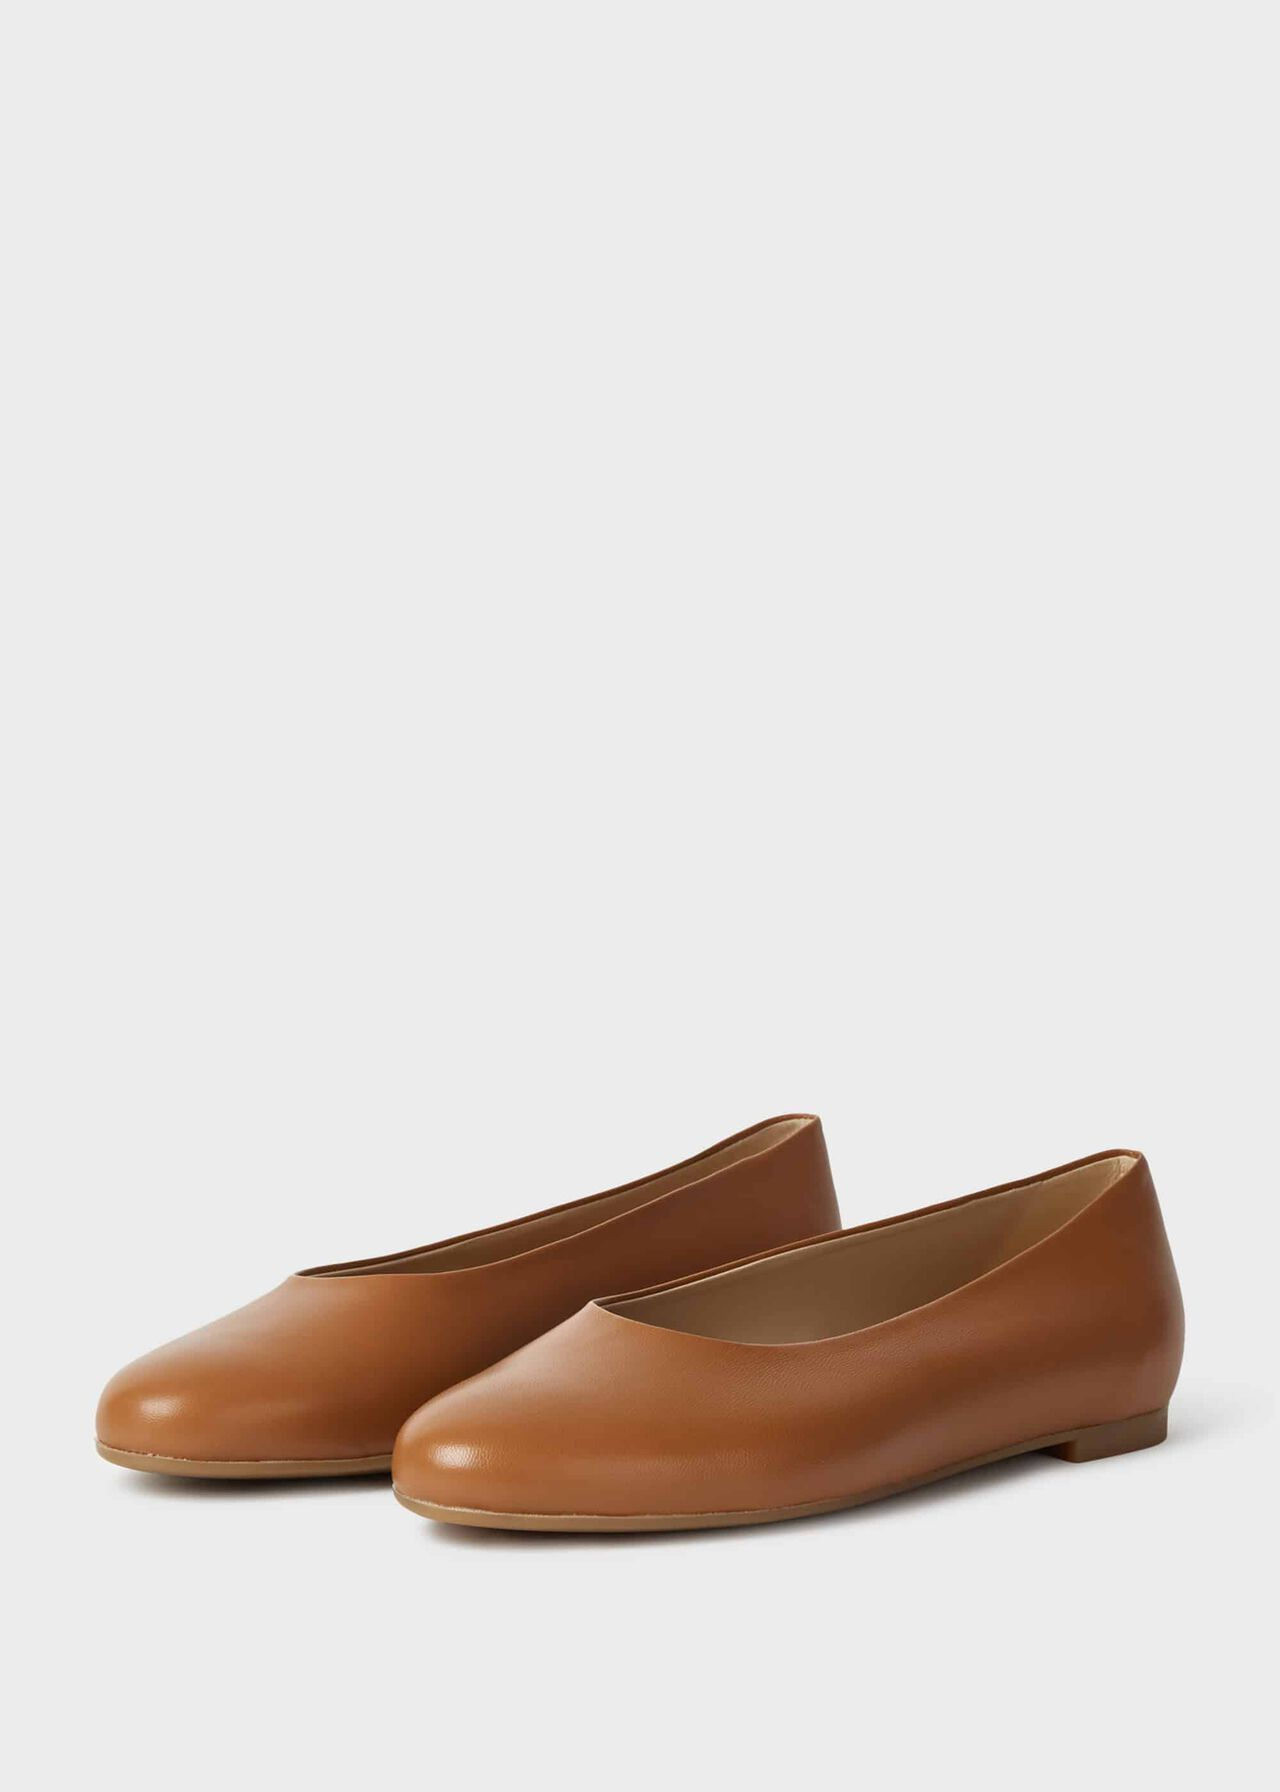 Suki Leather Ballerinas Toffee